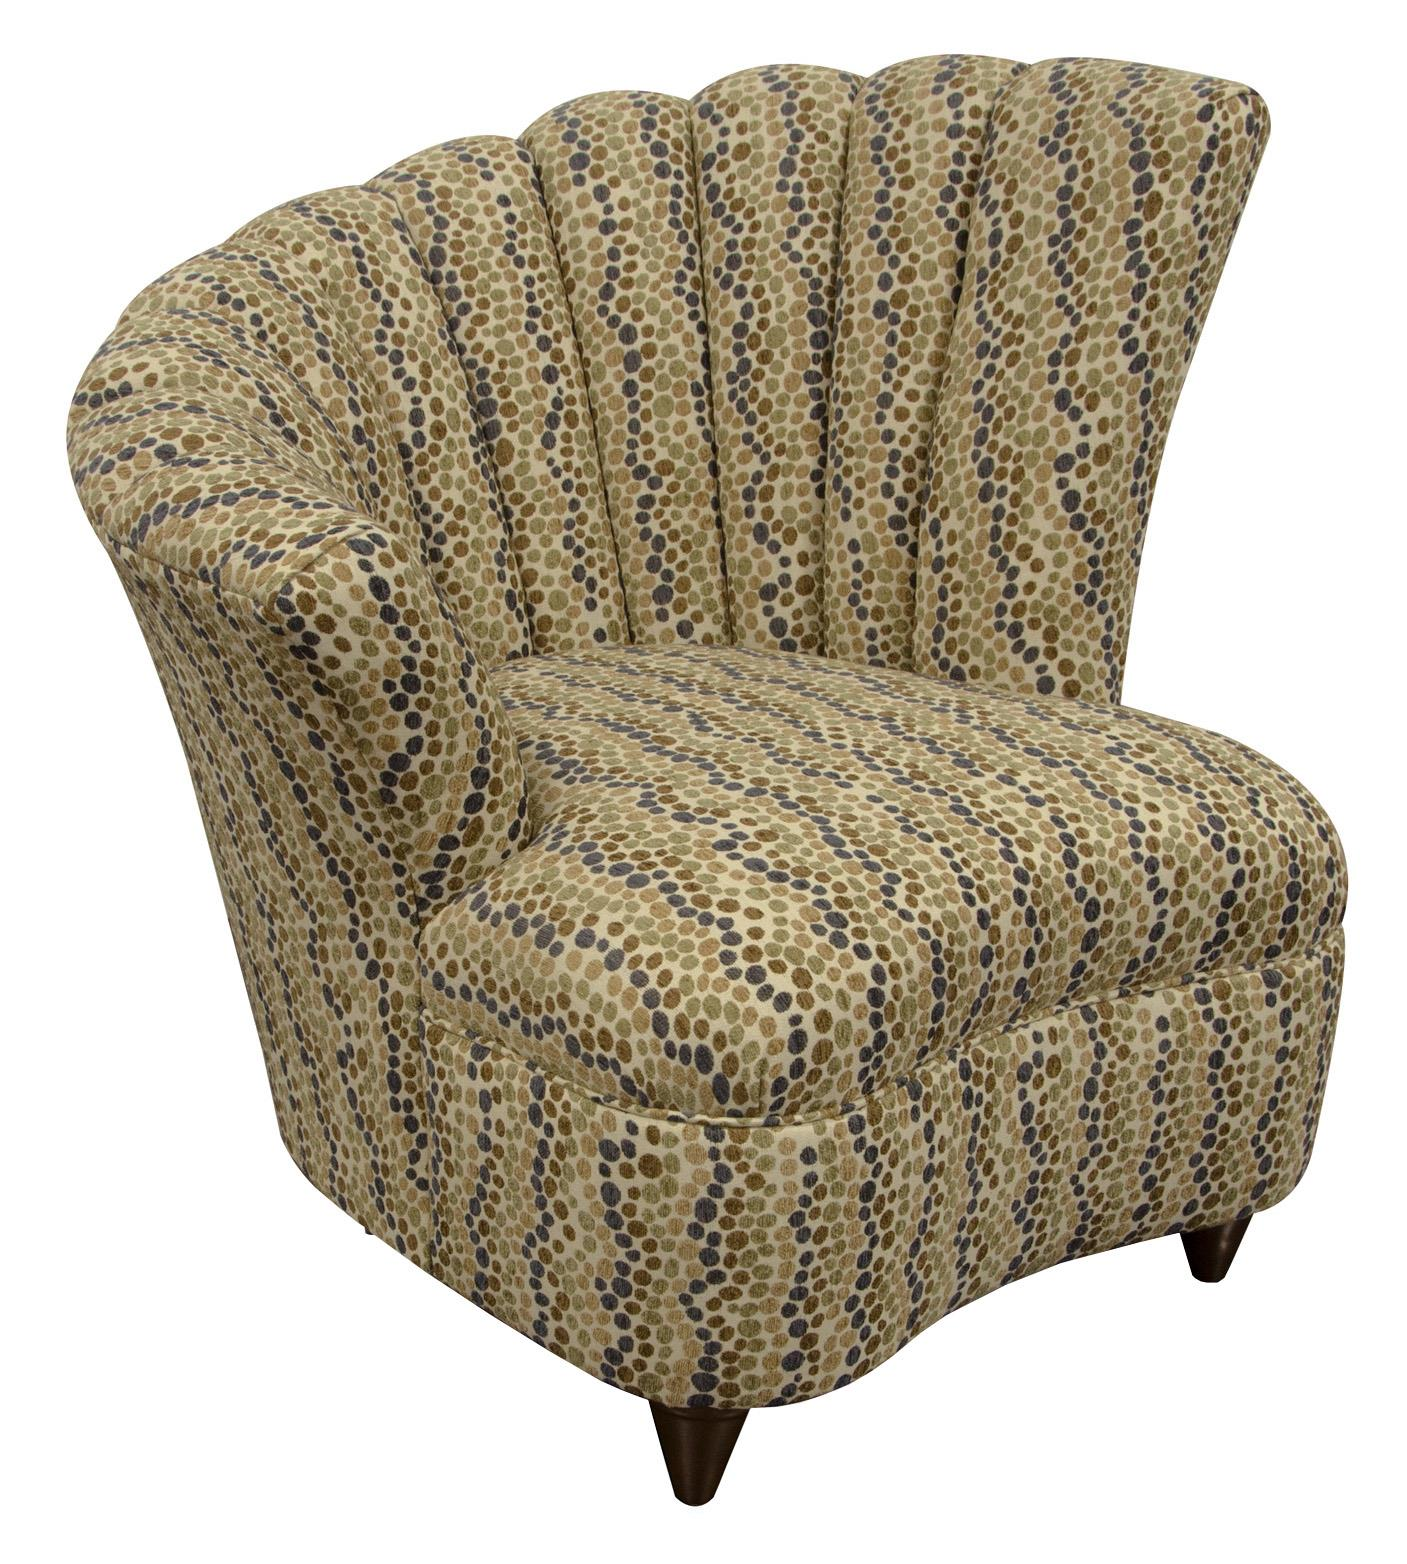 England Barcelona  Barcelona Accent Chair - Item Number: 1350-35